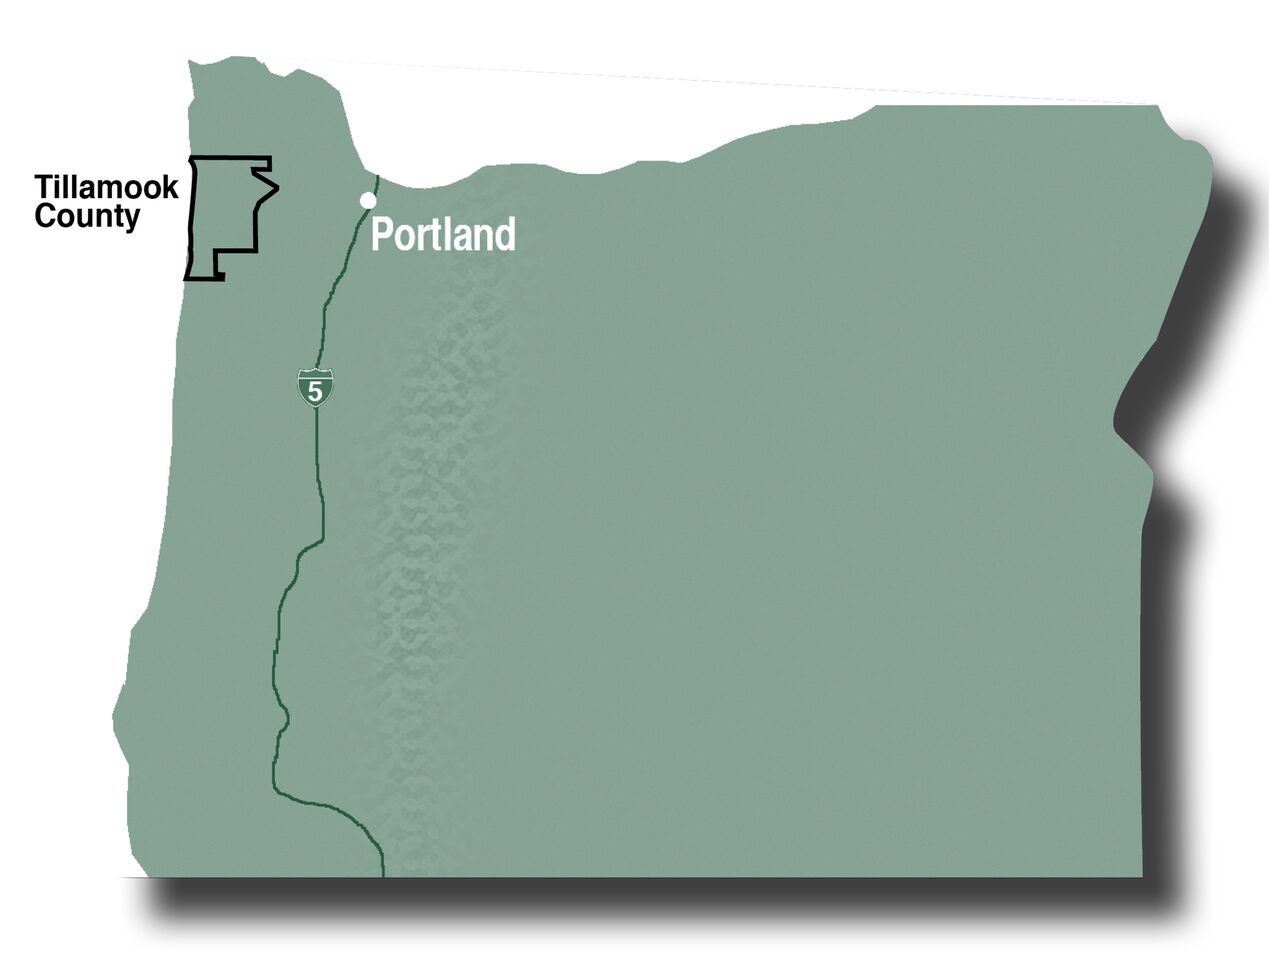 Tillamook County map